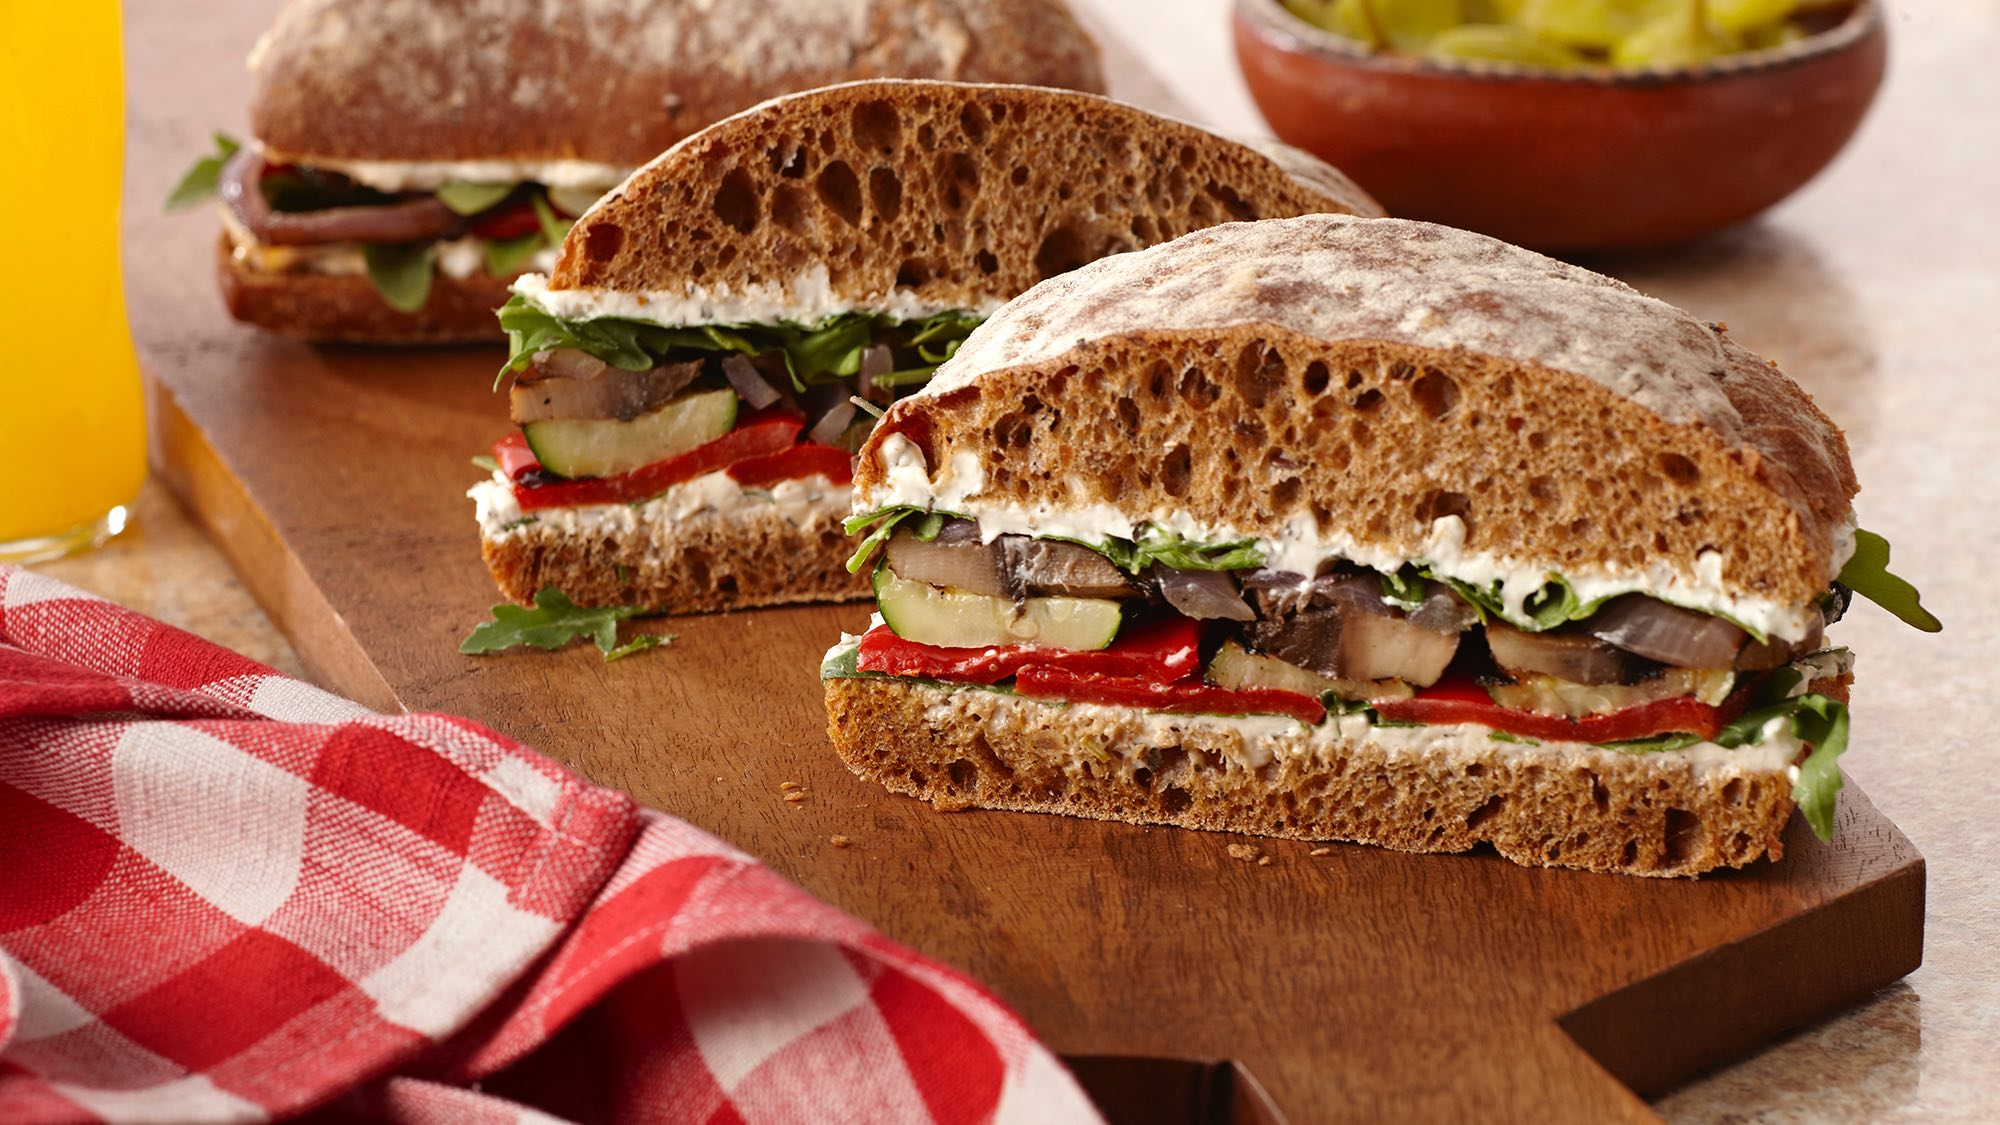 McCormick Italian Herb Grilled Vegetable Sandwich